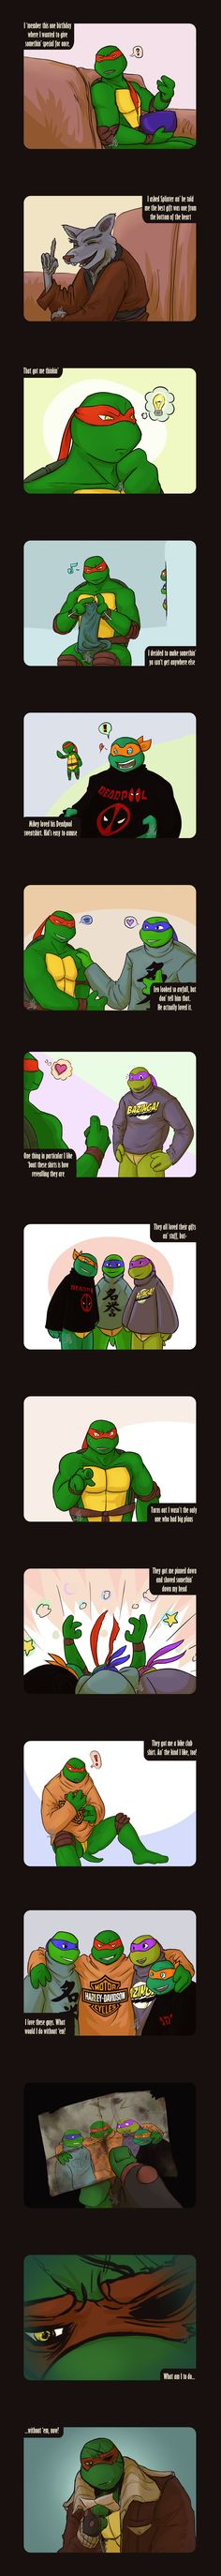 "TMNT Raphaels Presents Extension by Dragona15 on deviantART  At first I was like ""Aw, how sweet."" And then I got to the last few panels... T.T Oh Raph..."